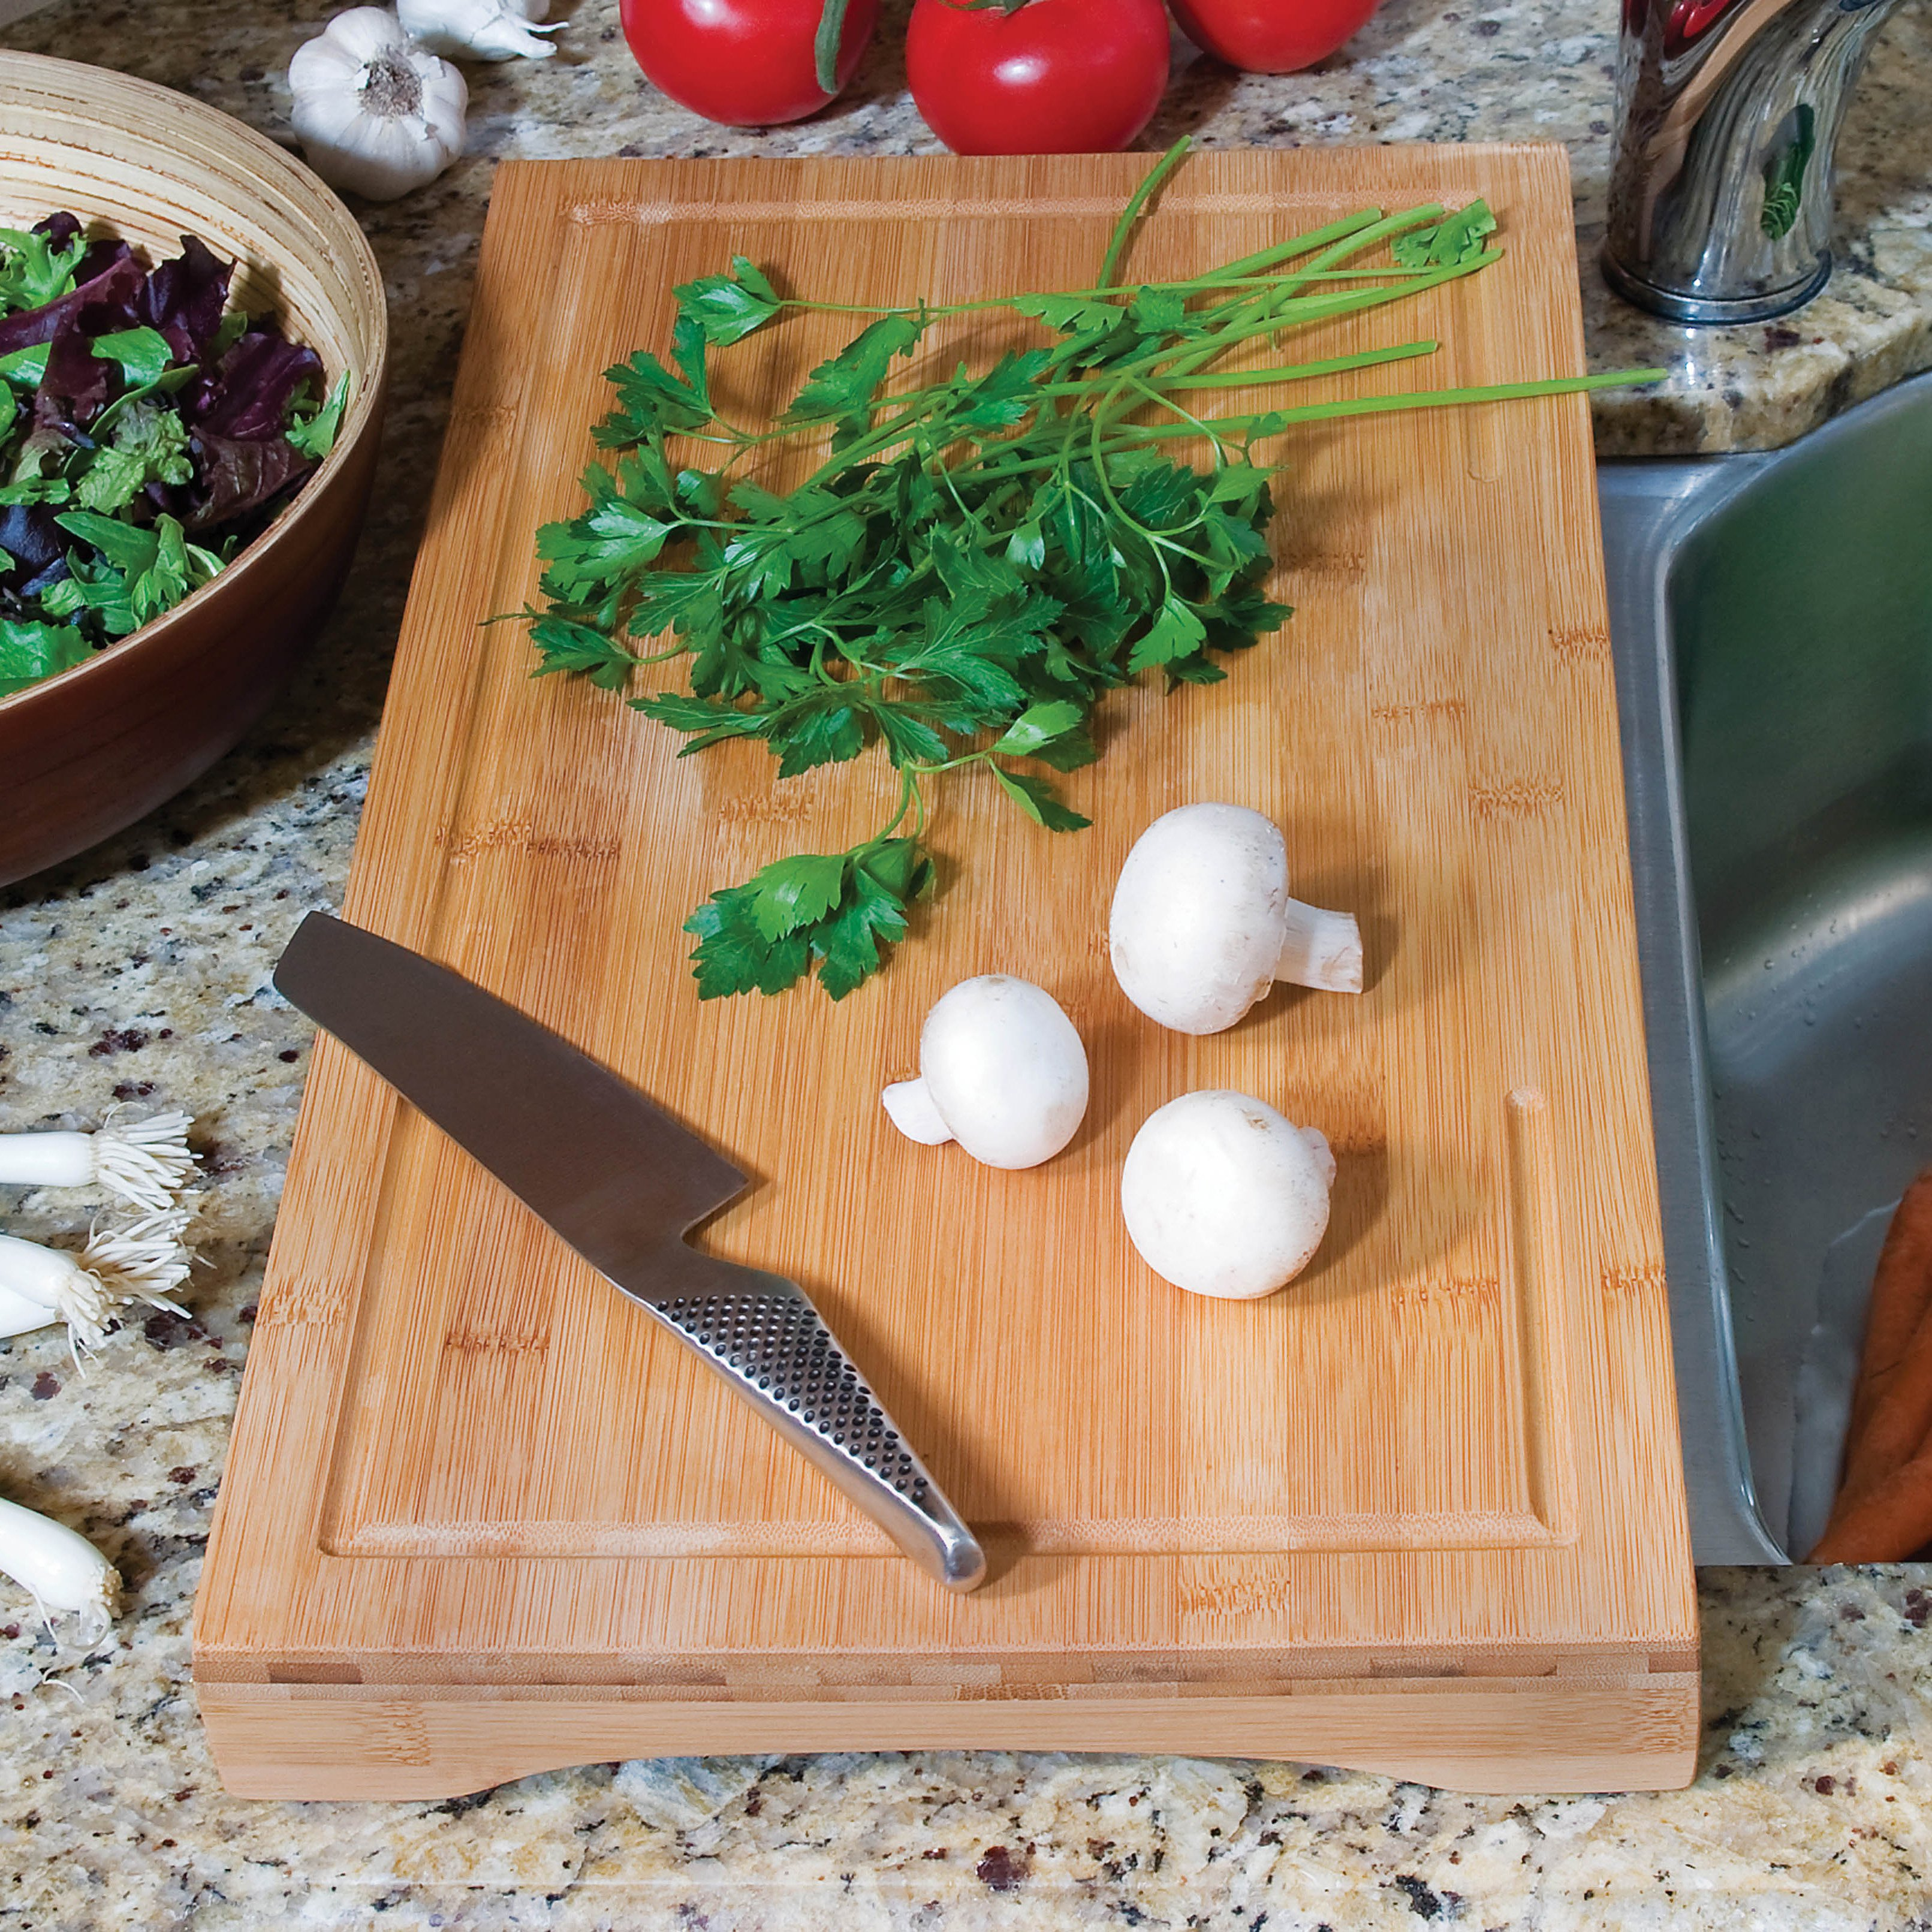 Over the Sink Cutting Board